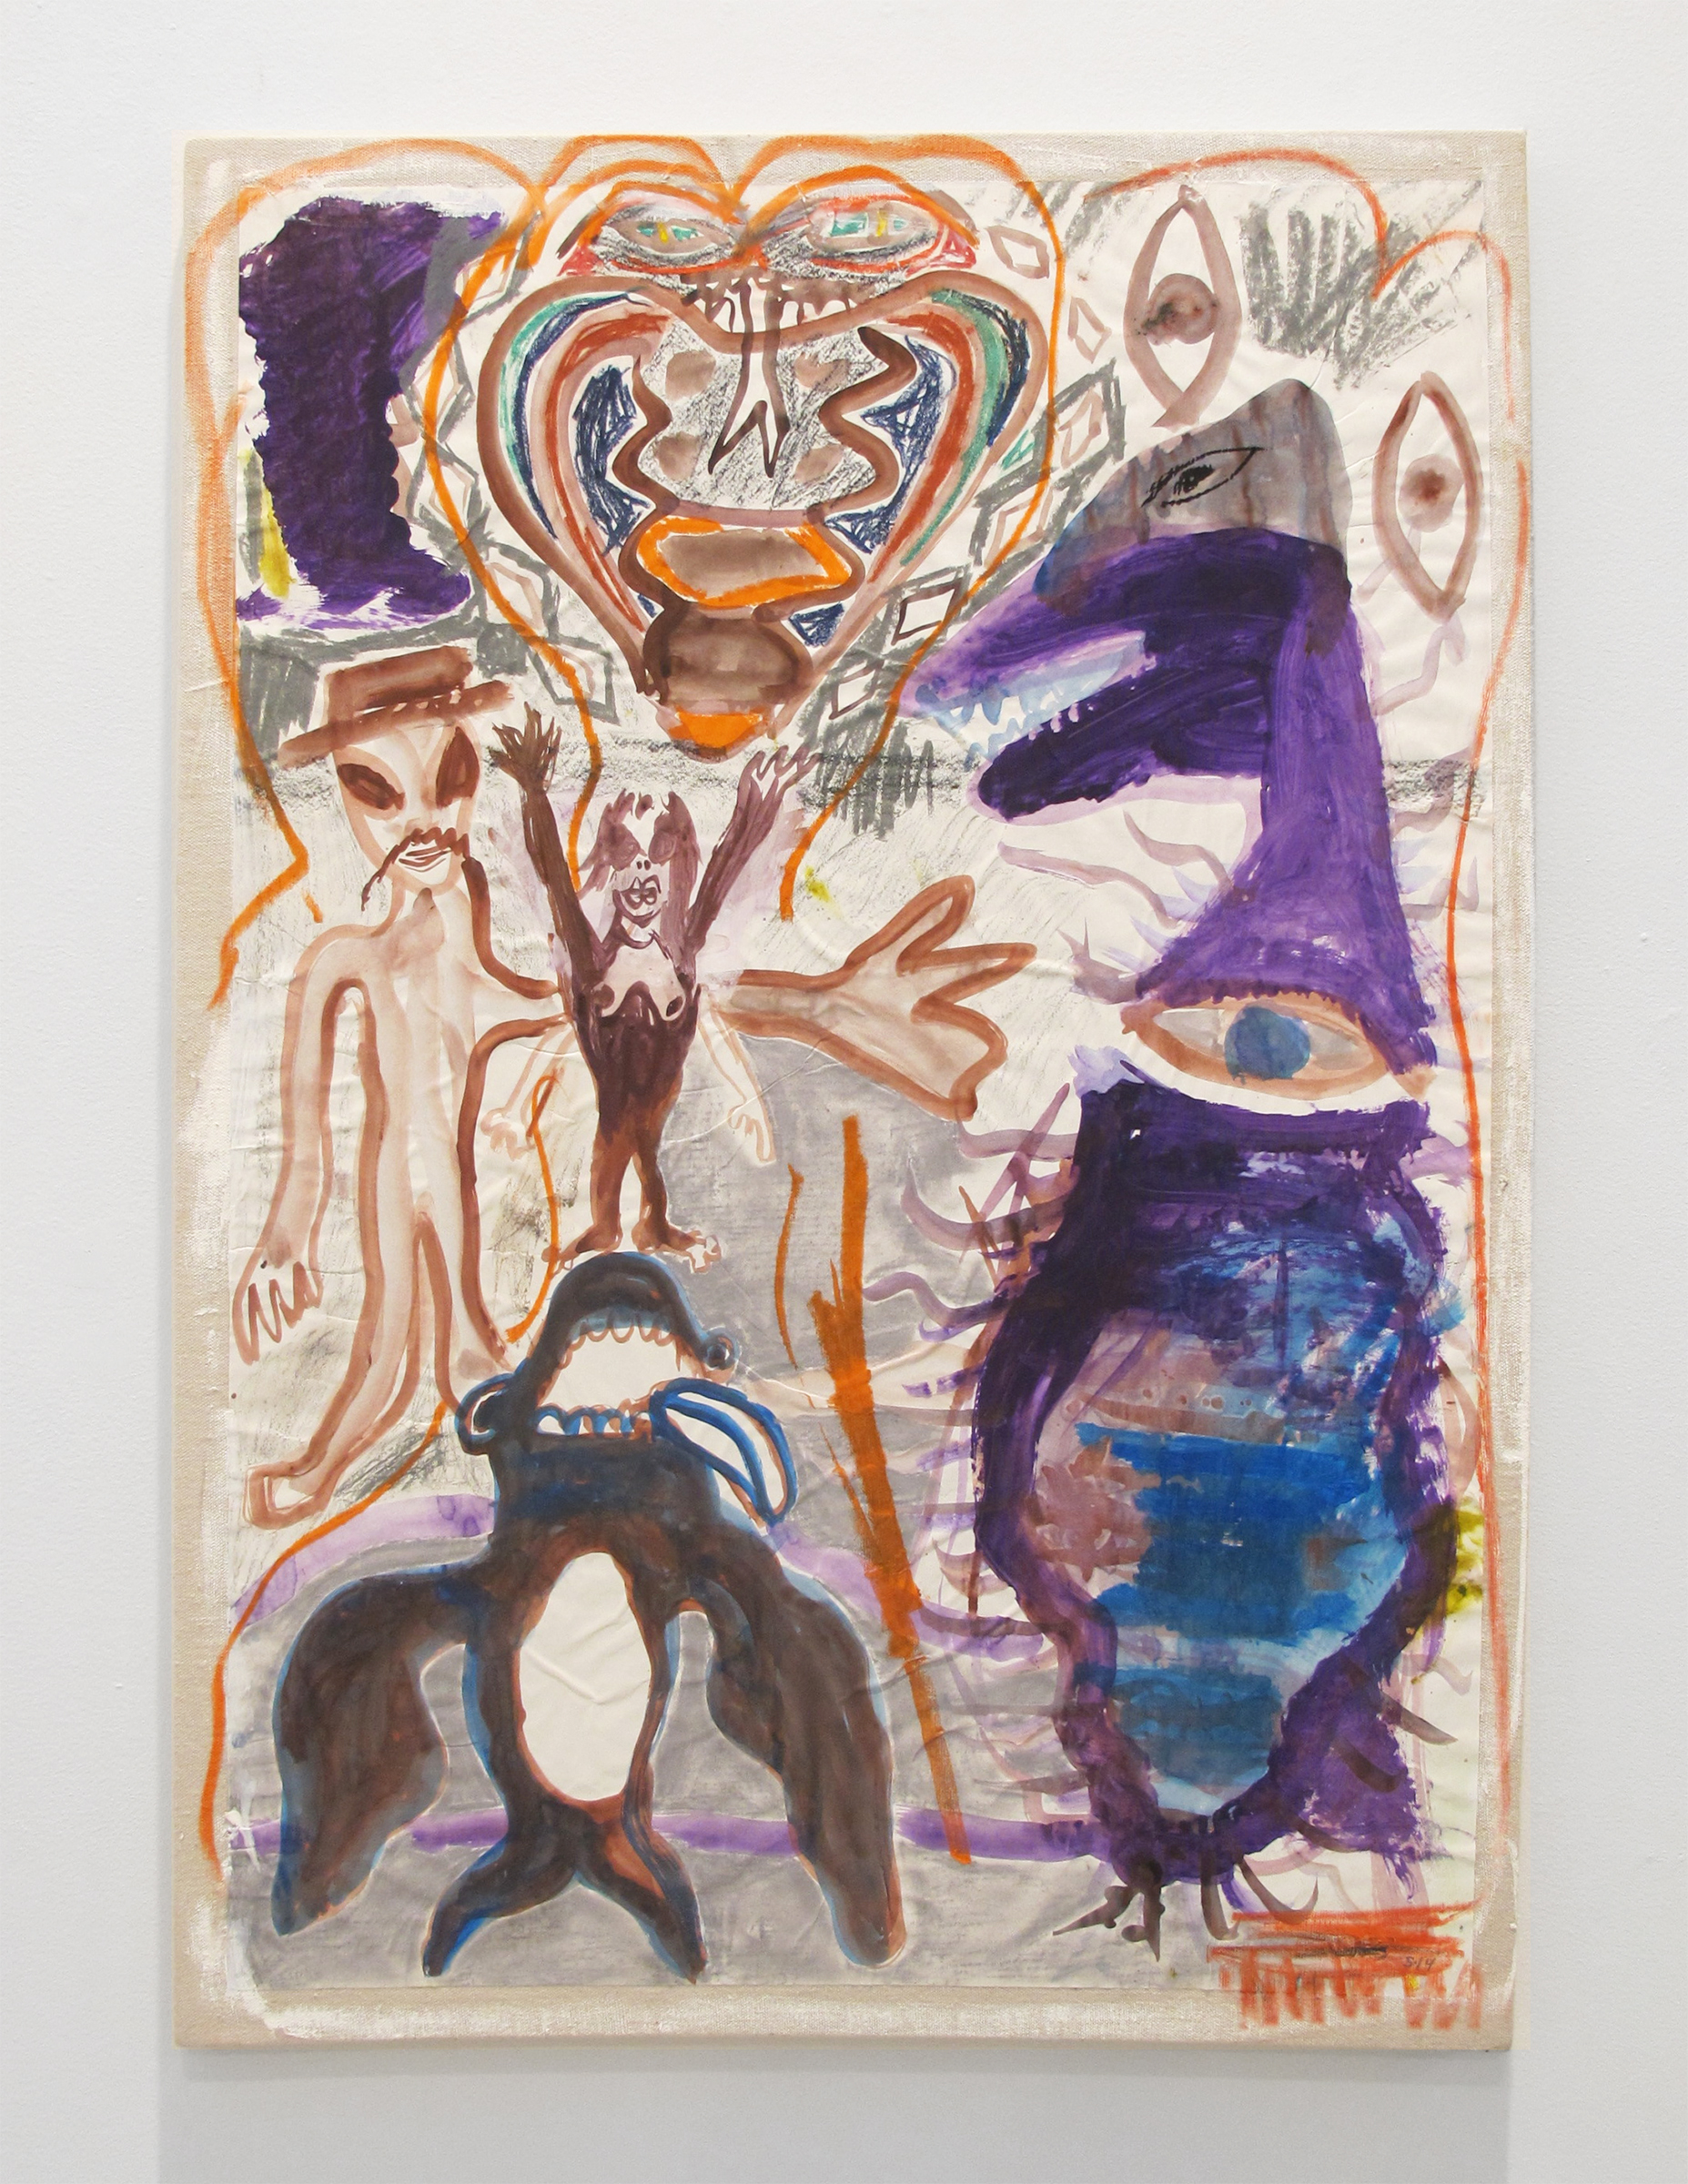 Bill Saylor, Under the big topless , 2014, flashe, ink, oil pastel, charcoal, paper on canvas, 40 x 27 in